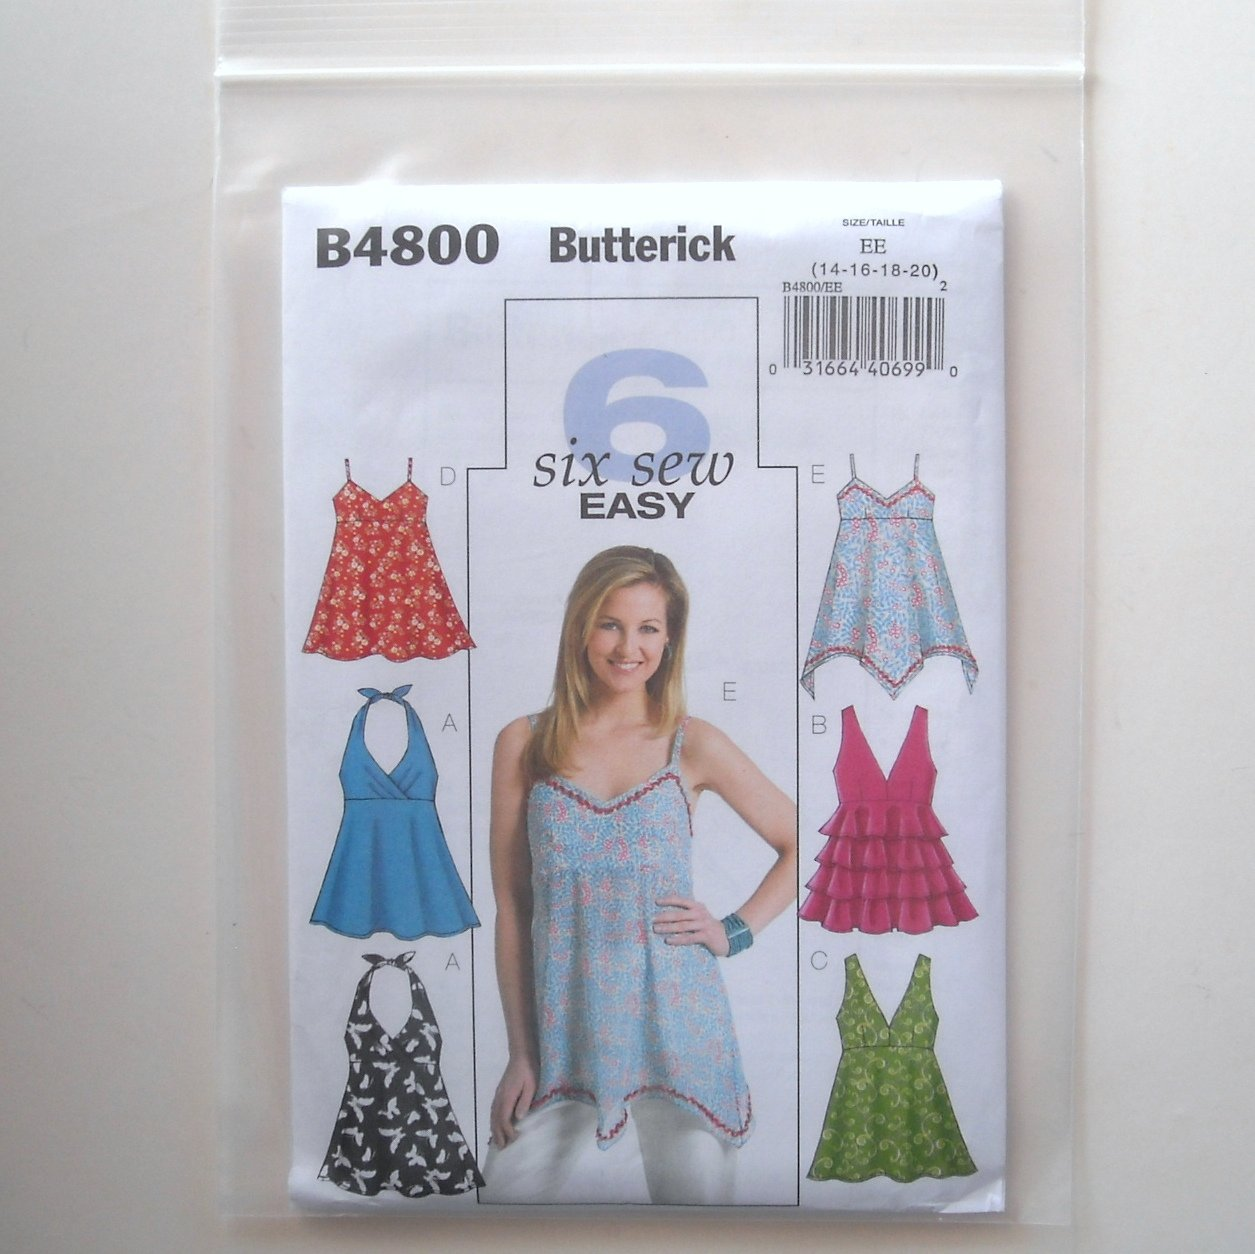 Butterick Pattern B4800 6 Sew Easy Size 14 - 20 Misses Top